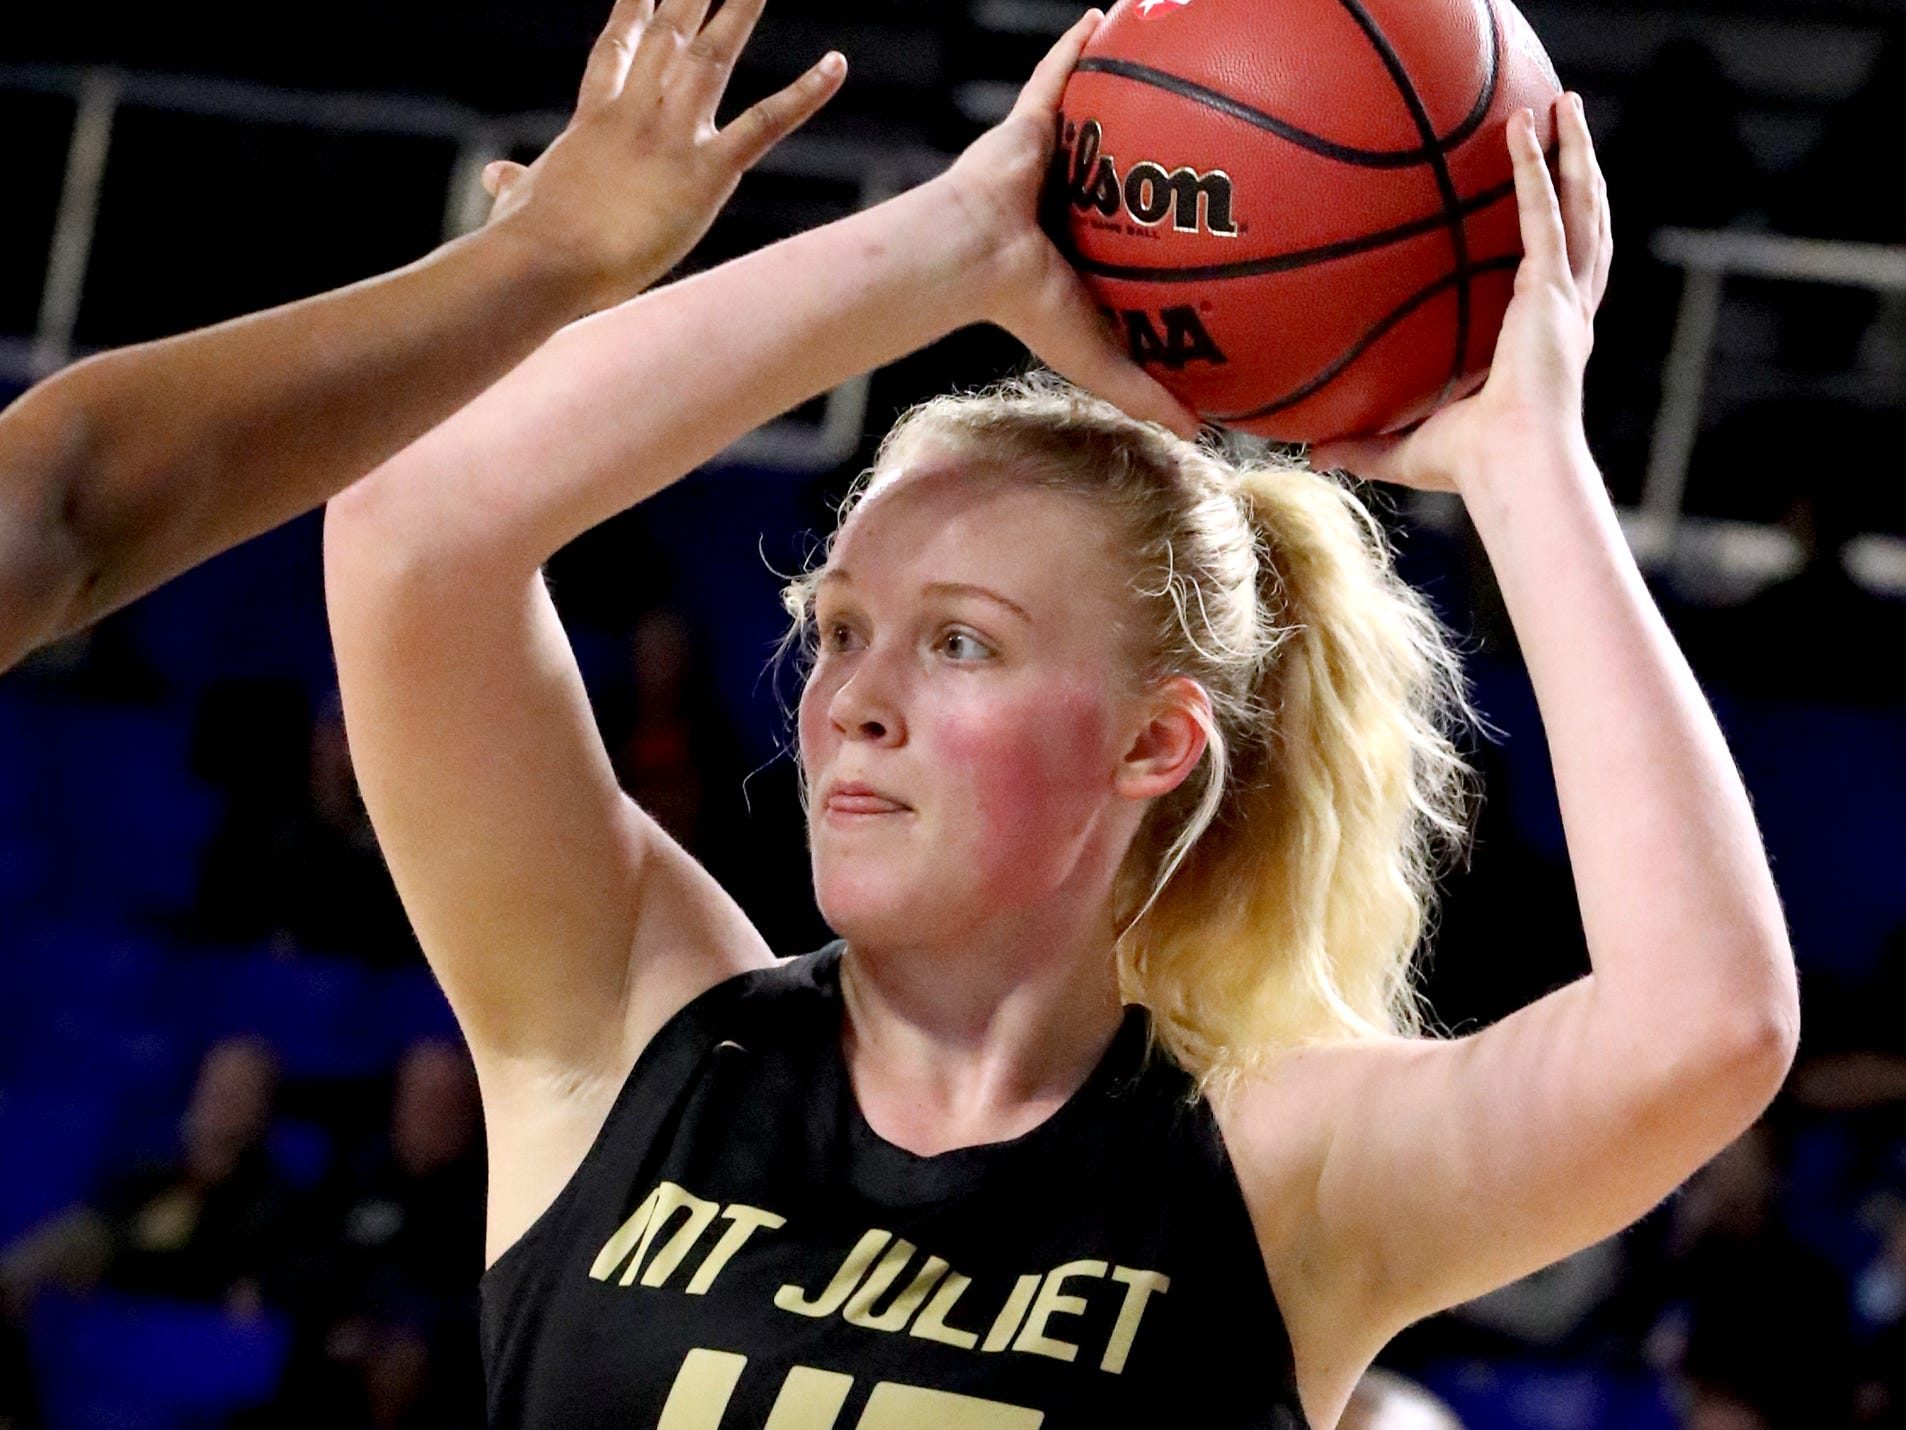 Mt. Juliet's Emma Palmer (45) looks for a player to pass to during the quarterfinal round of the TSSAA Div. 1 Class AAA Girls State Tournament Houston, on Wednesday, March 6, 2019, at Murphy Center in Murfreesboro, Tenn.